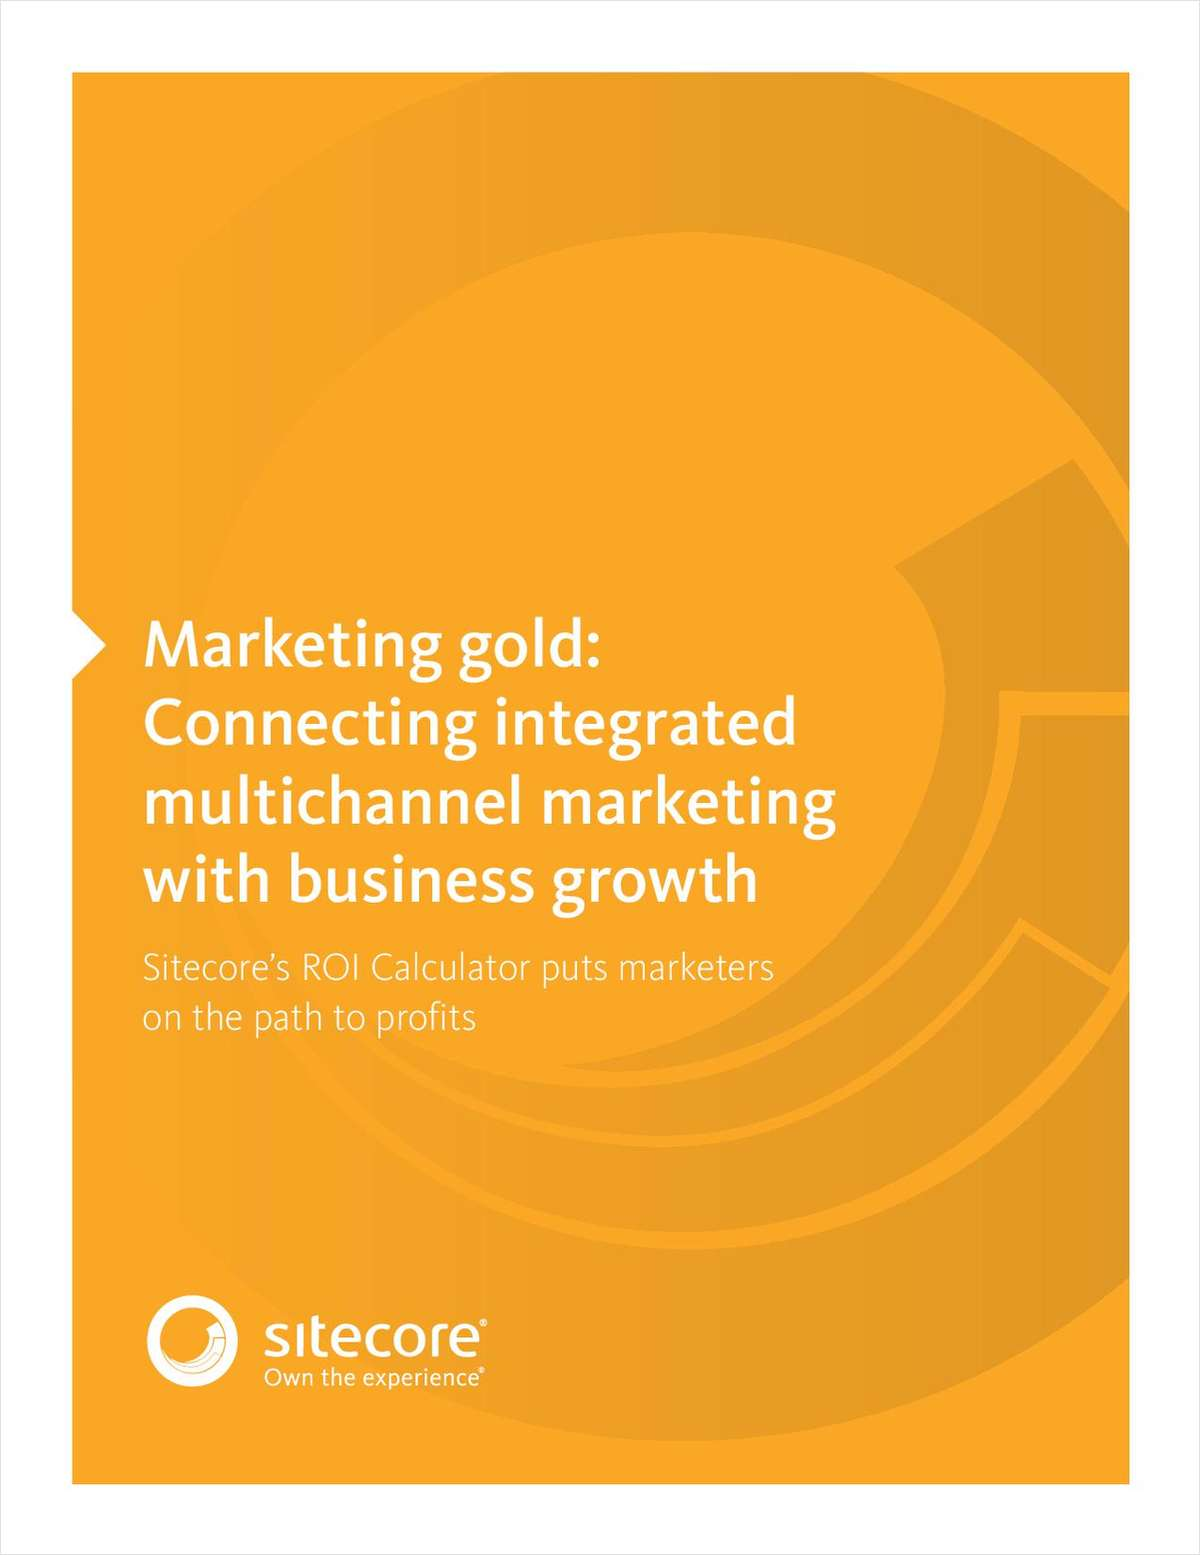 Marketing Gold: Connecting Integrated Multichannel Marketing with Business Growth